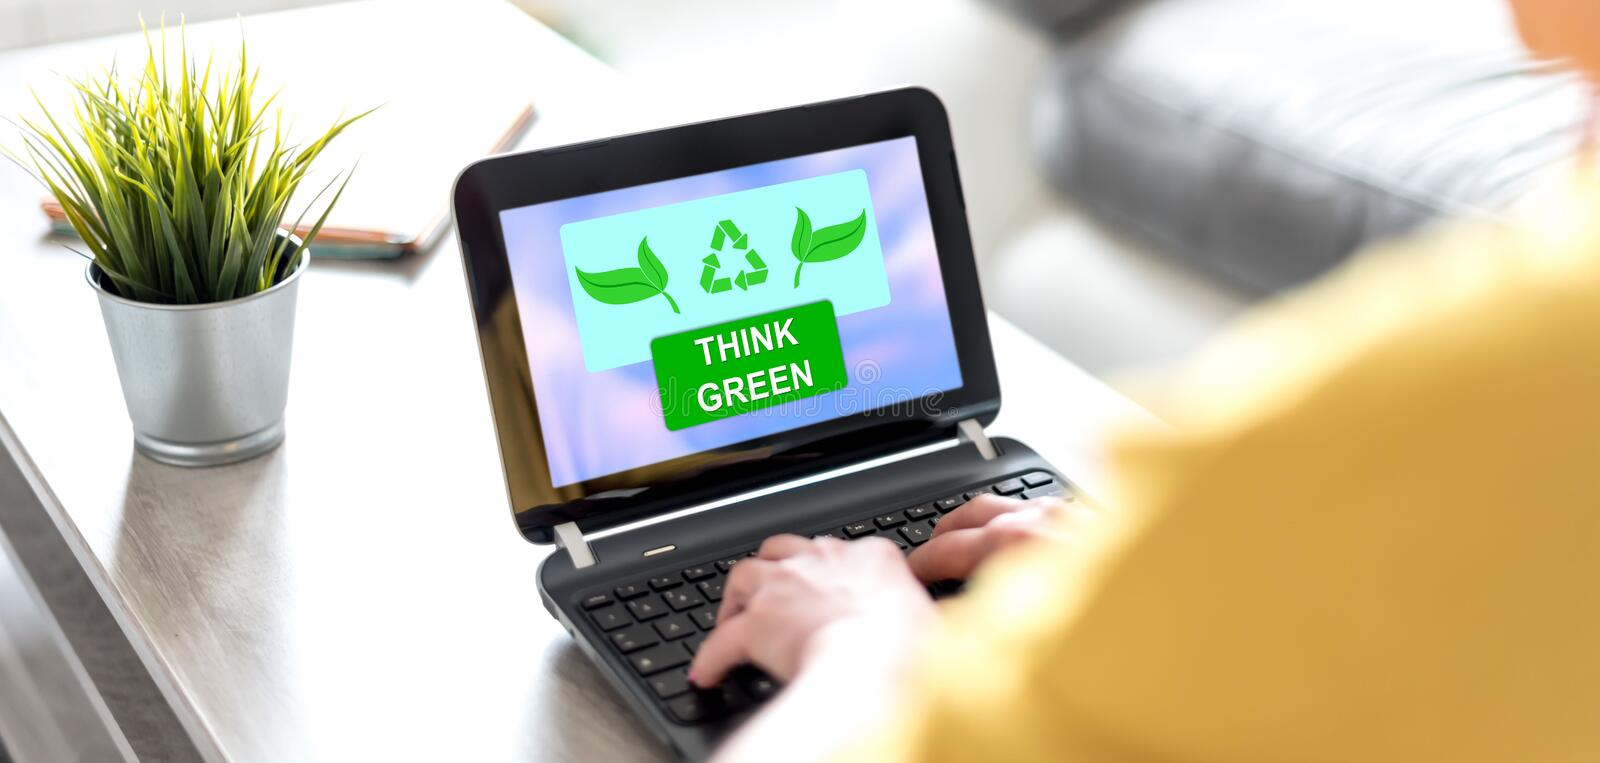 Think green concept on a laptop screen stock image